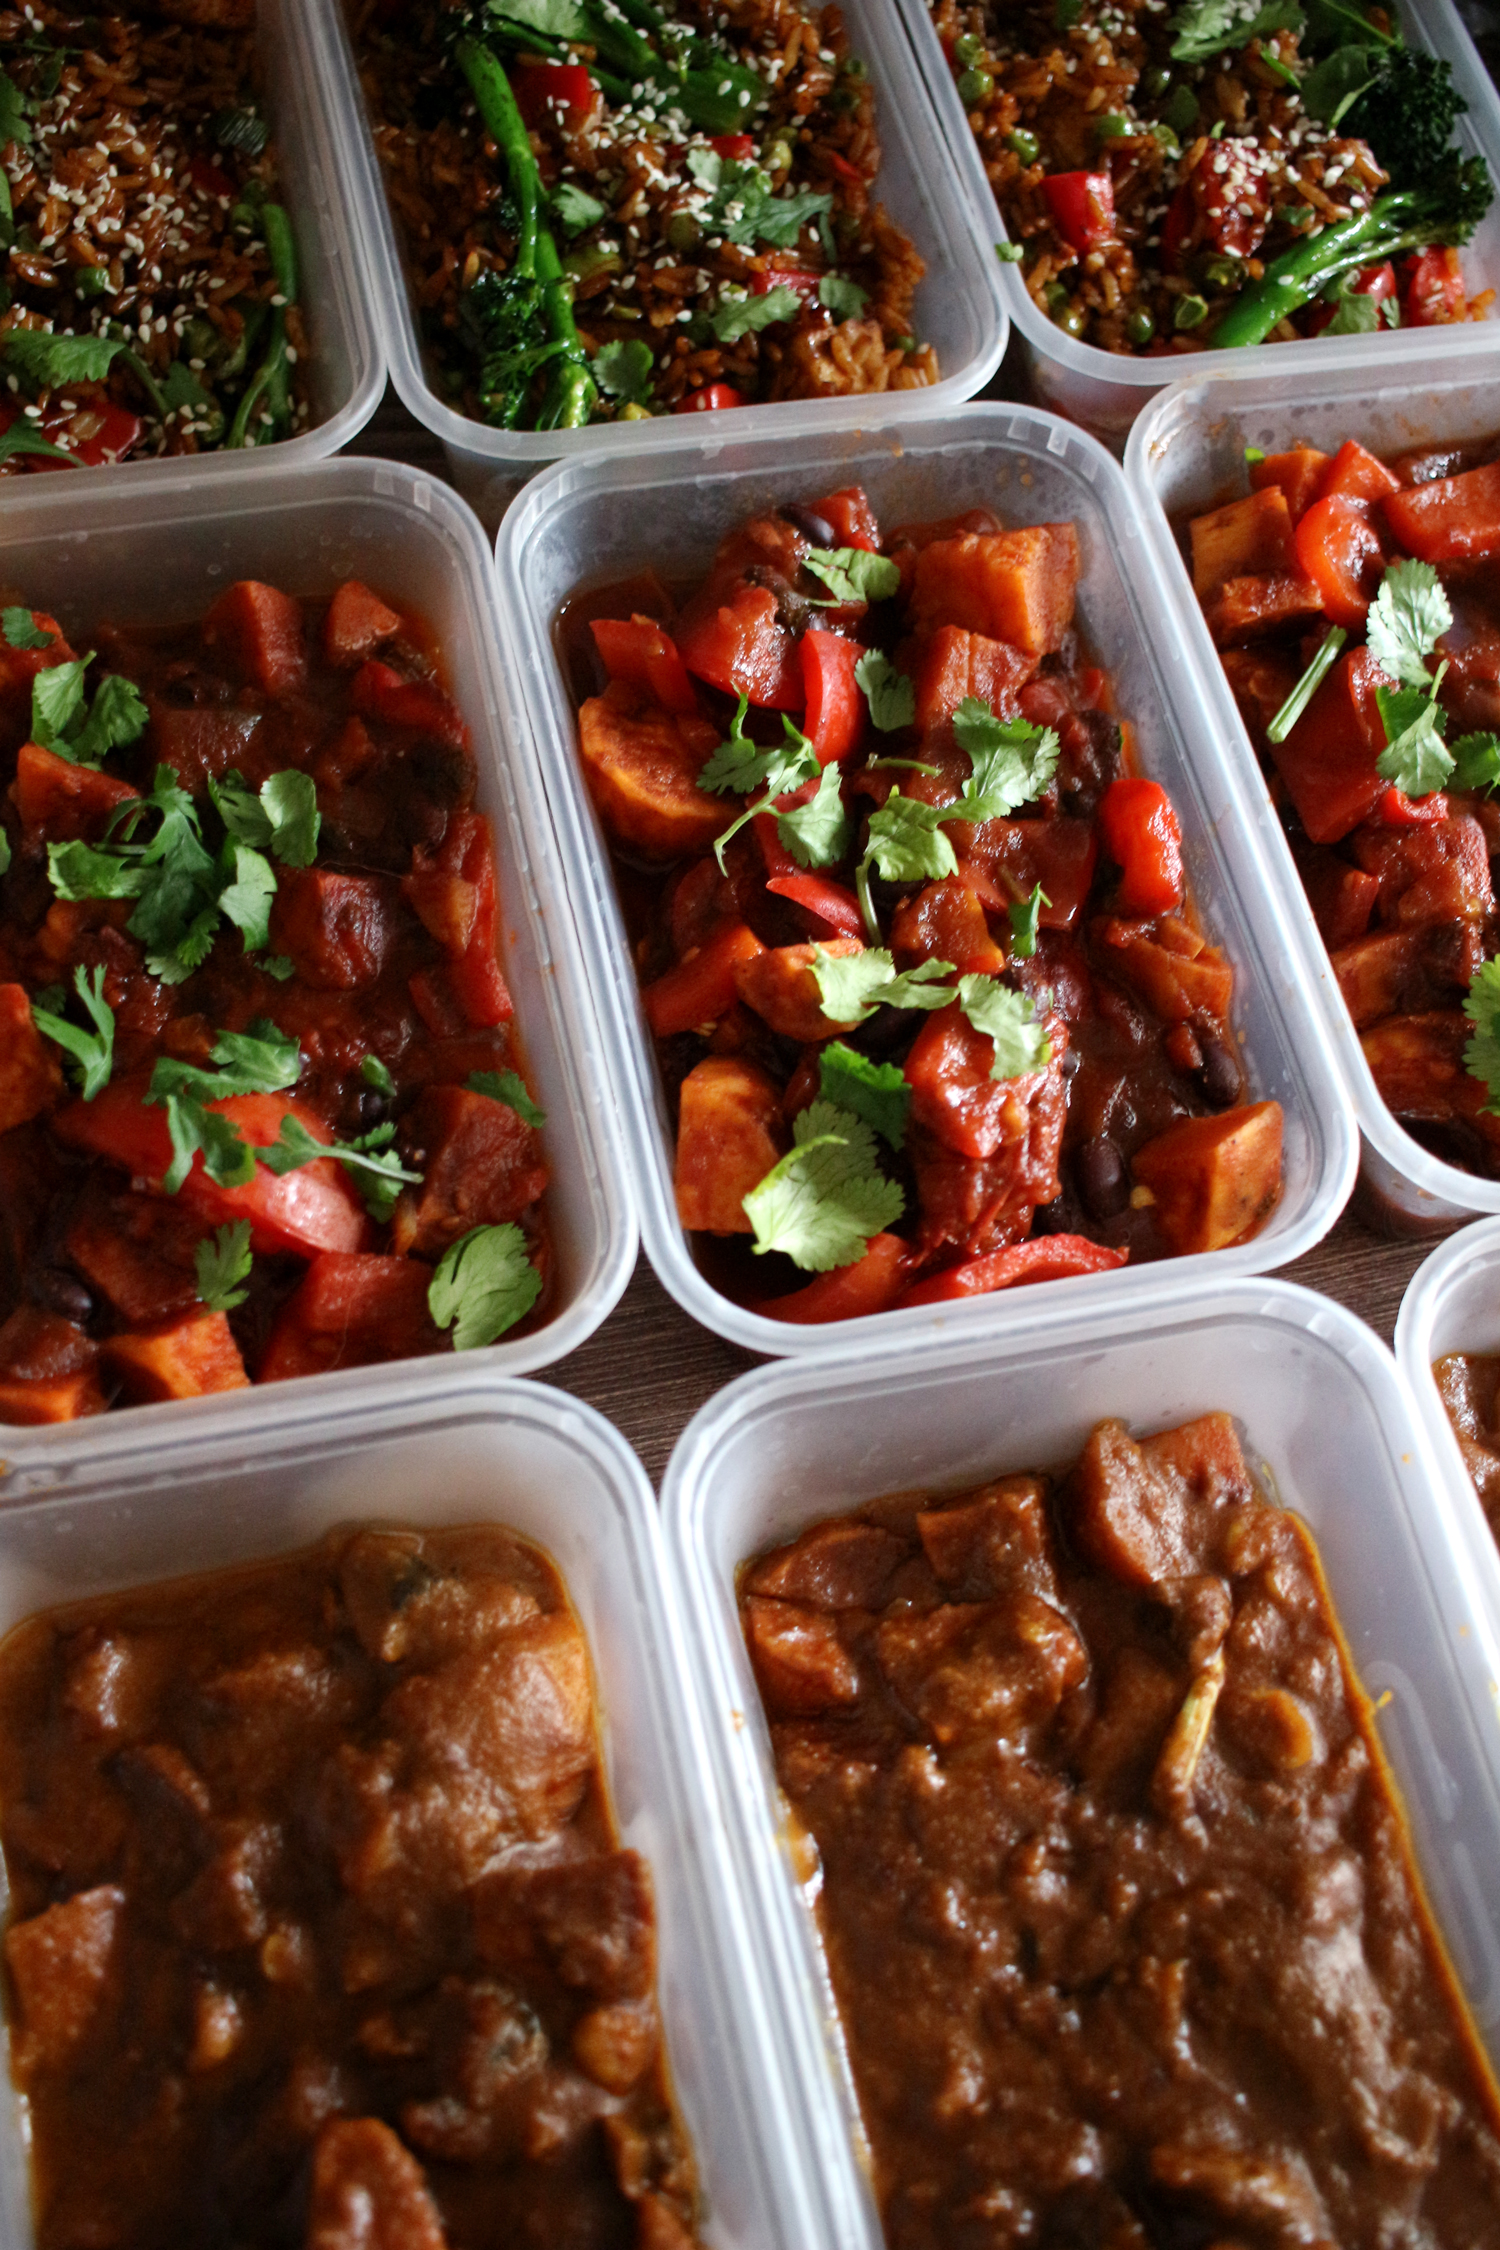 meal-prep-vegetarian-a-weeks-worth-of-meals-ideas-and-recipes-5